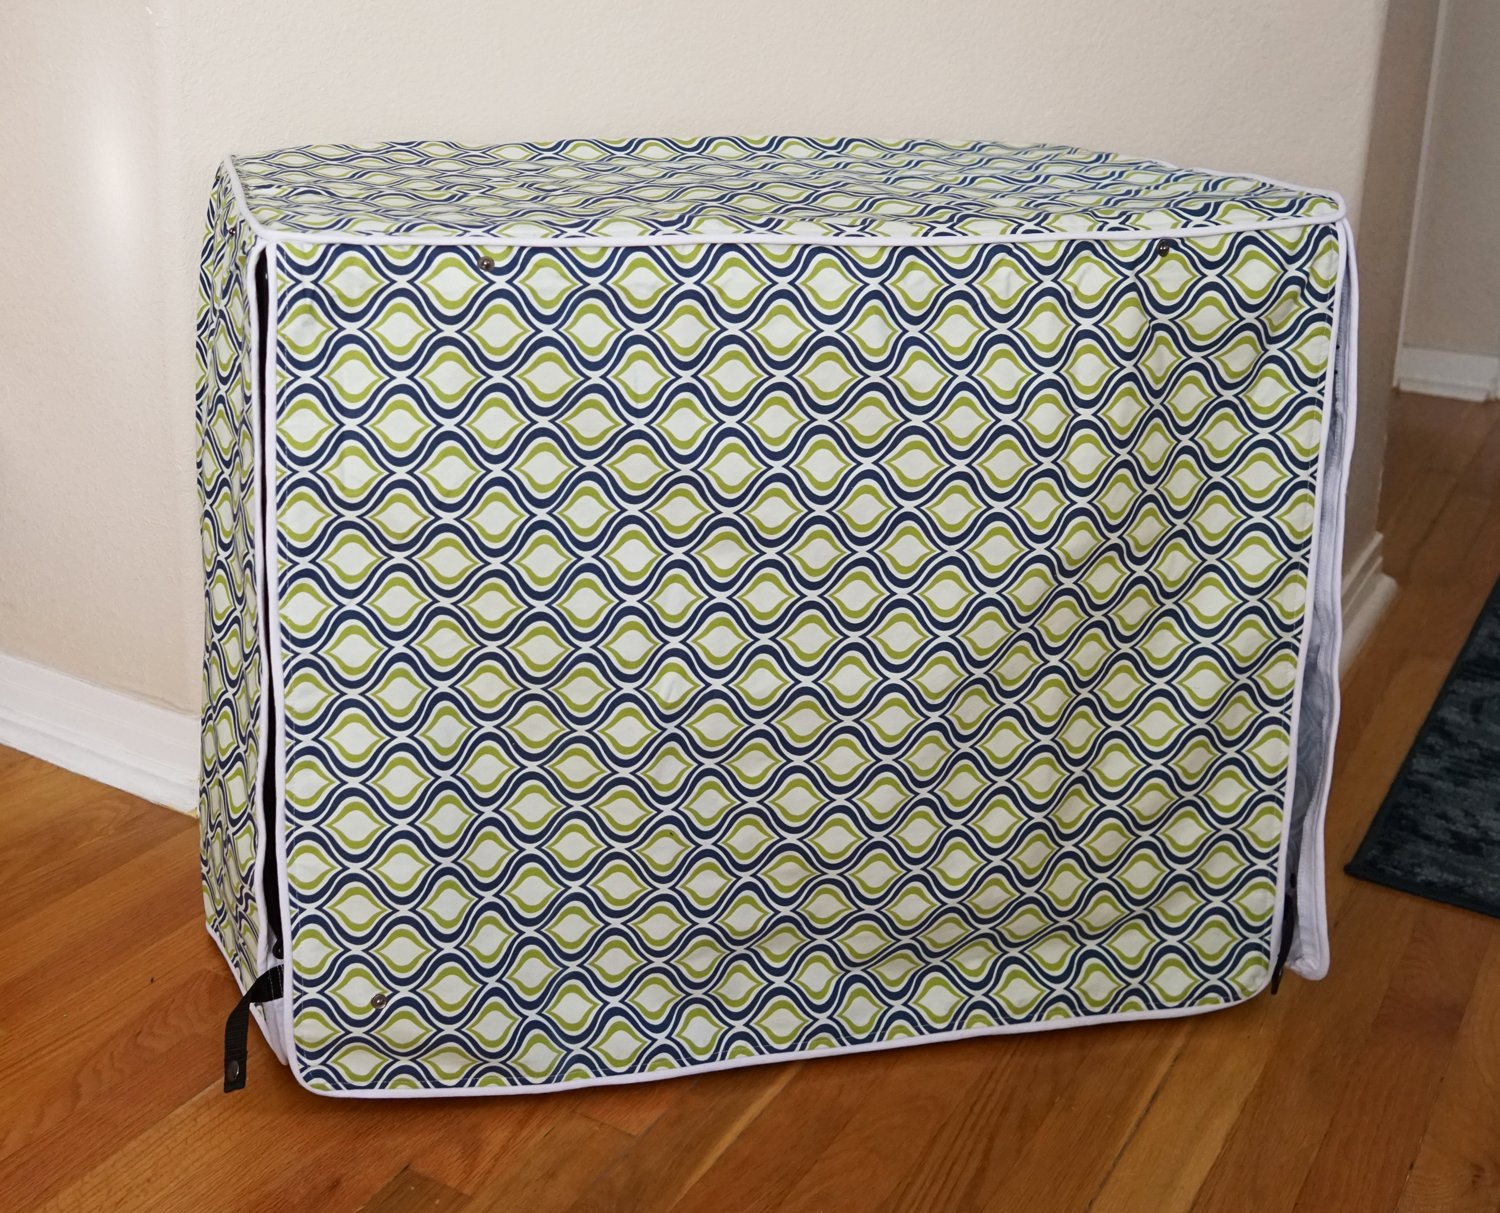 Green Blue Swivel Dog Pet Wire Kennel Crate Cage House Cover (Small, Medium, Large, XL, XXL) (MEDIUM 30x21x24'')